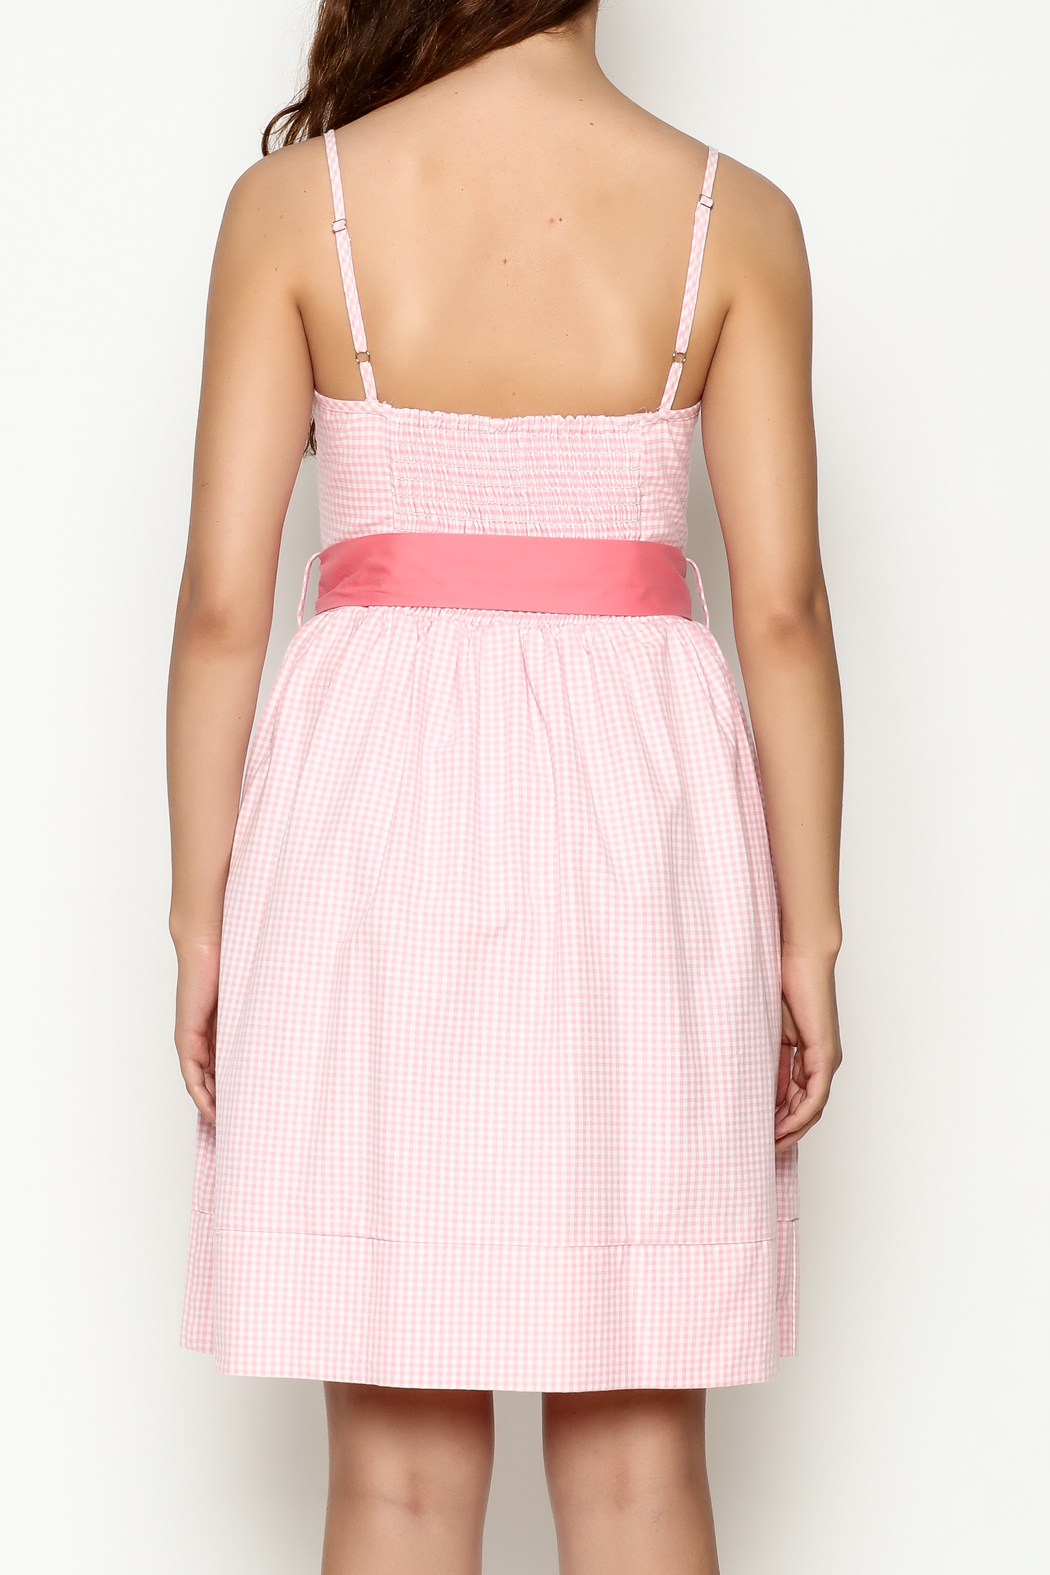 Roberta Oaks Gingham Print Dress - Back Cropped Image